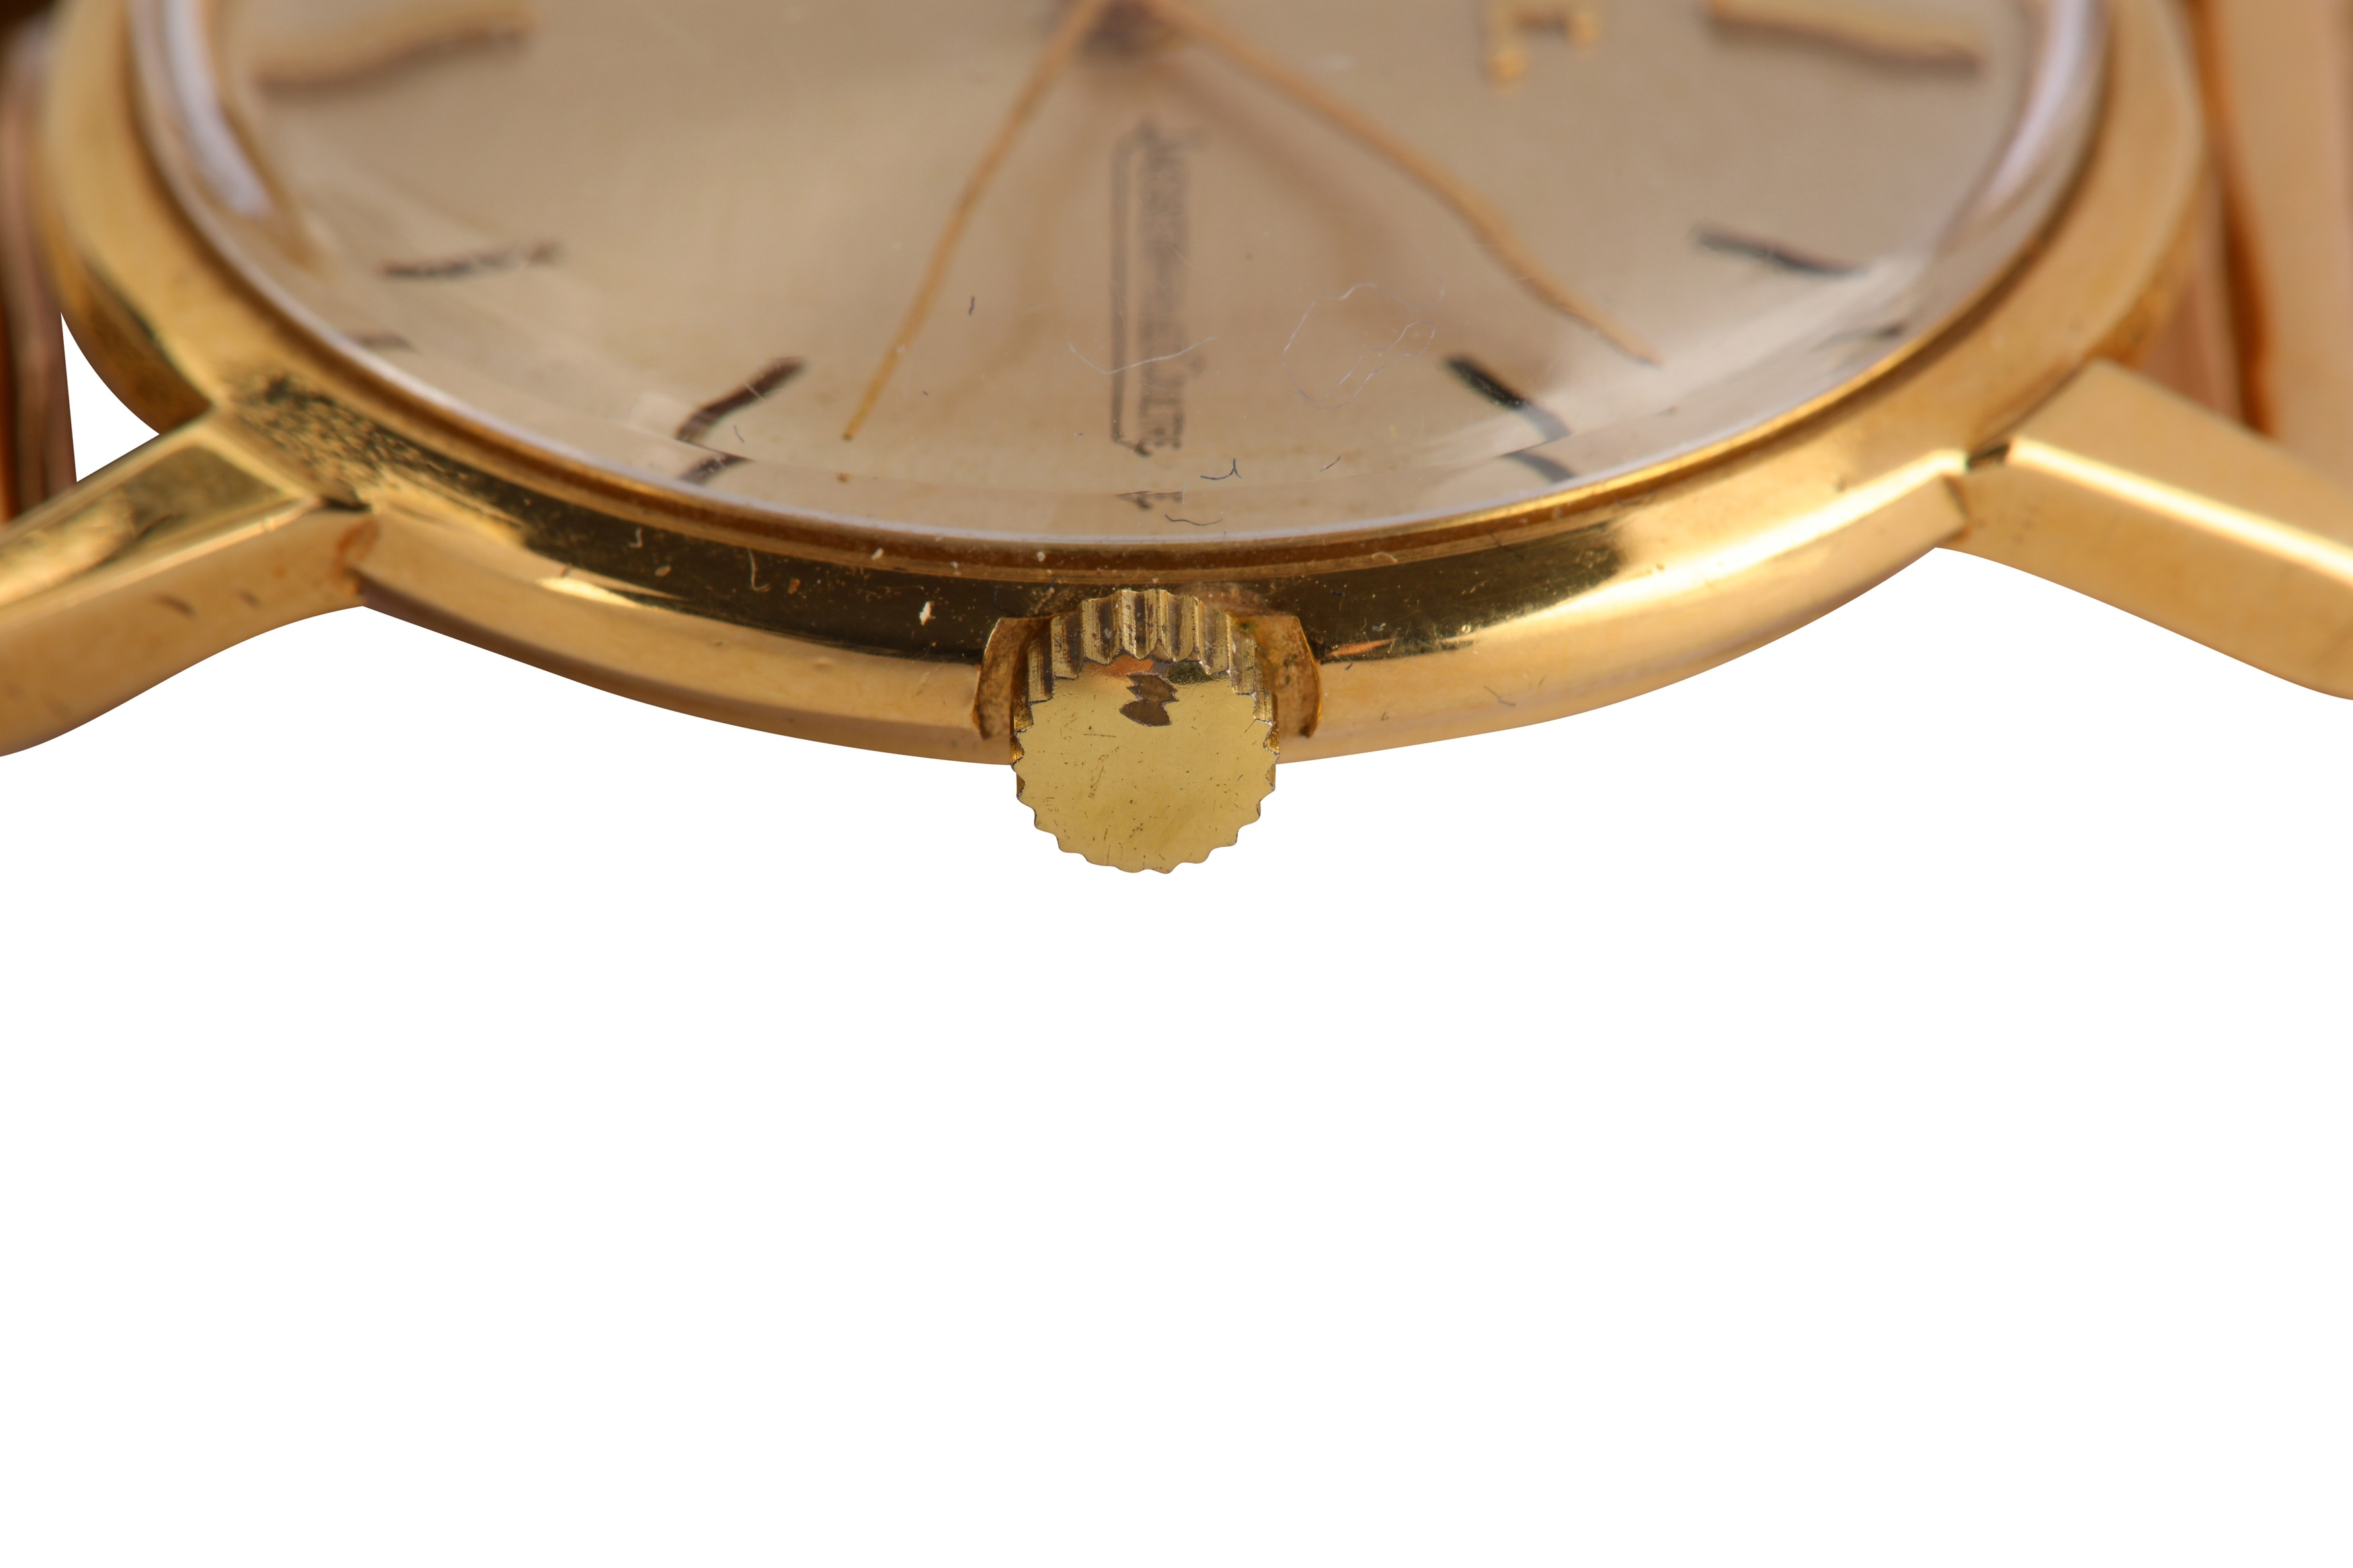 JAEGER LECOULTRE. - Image 4 of 6